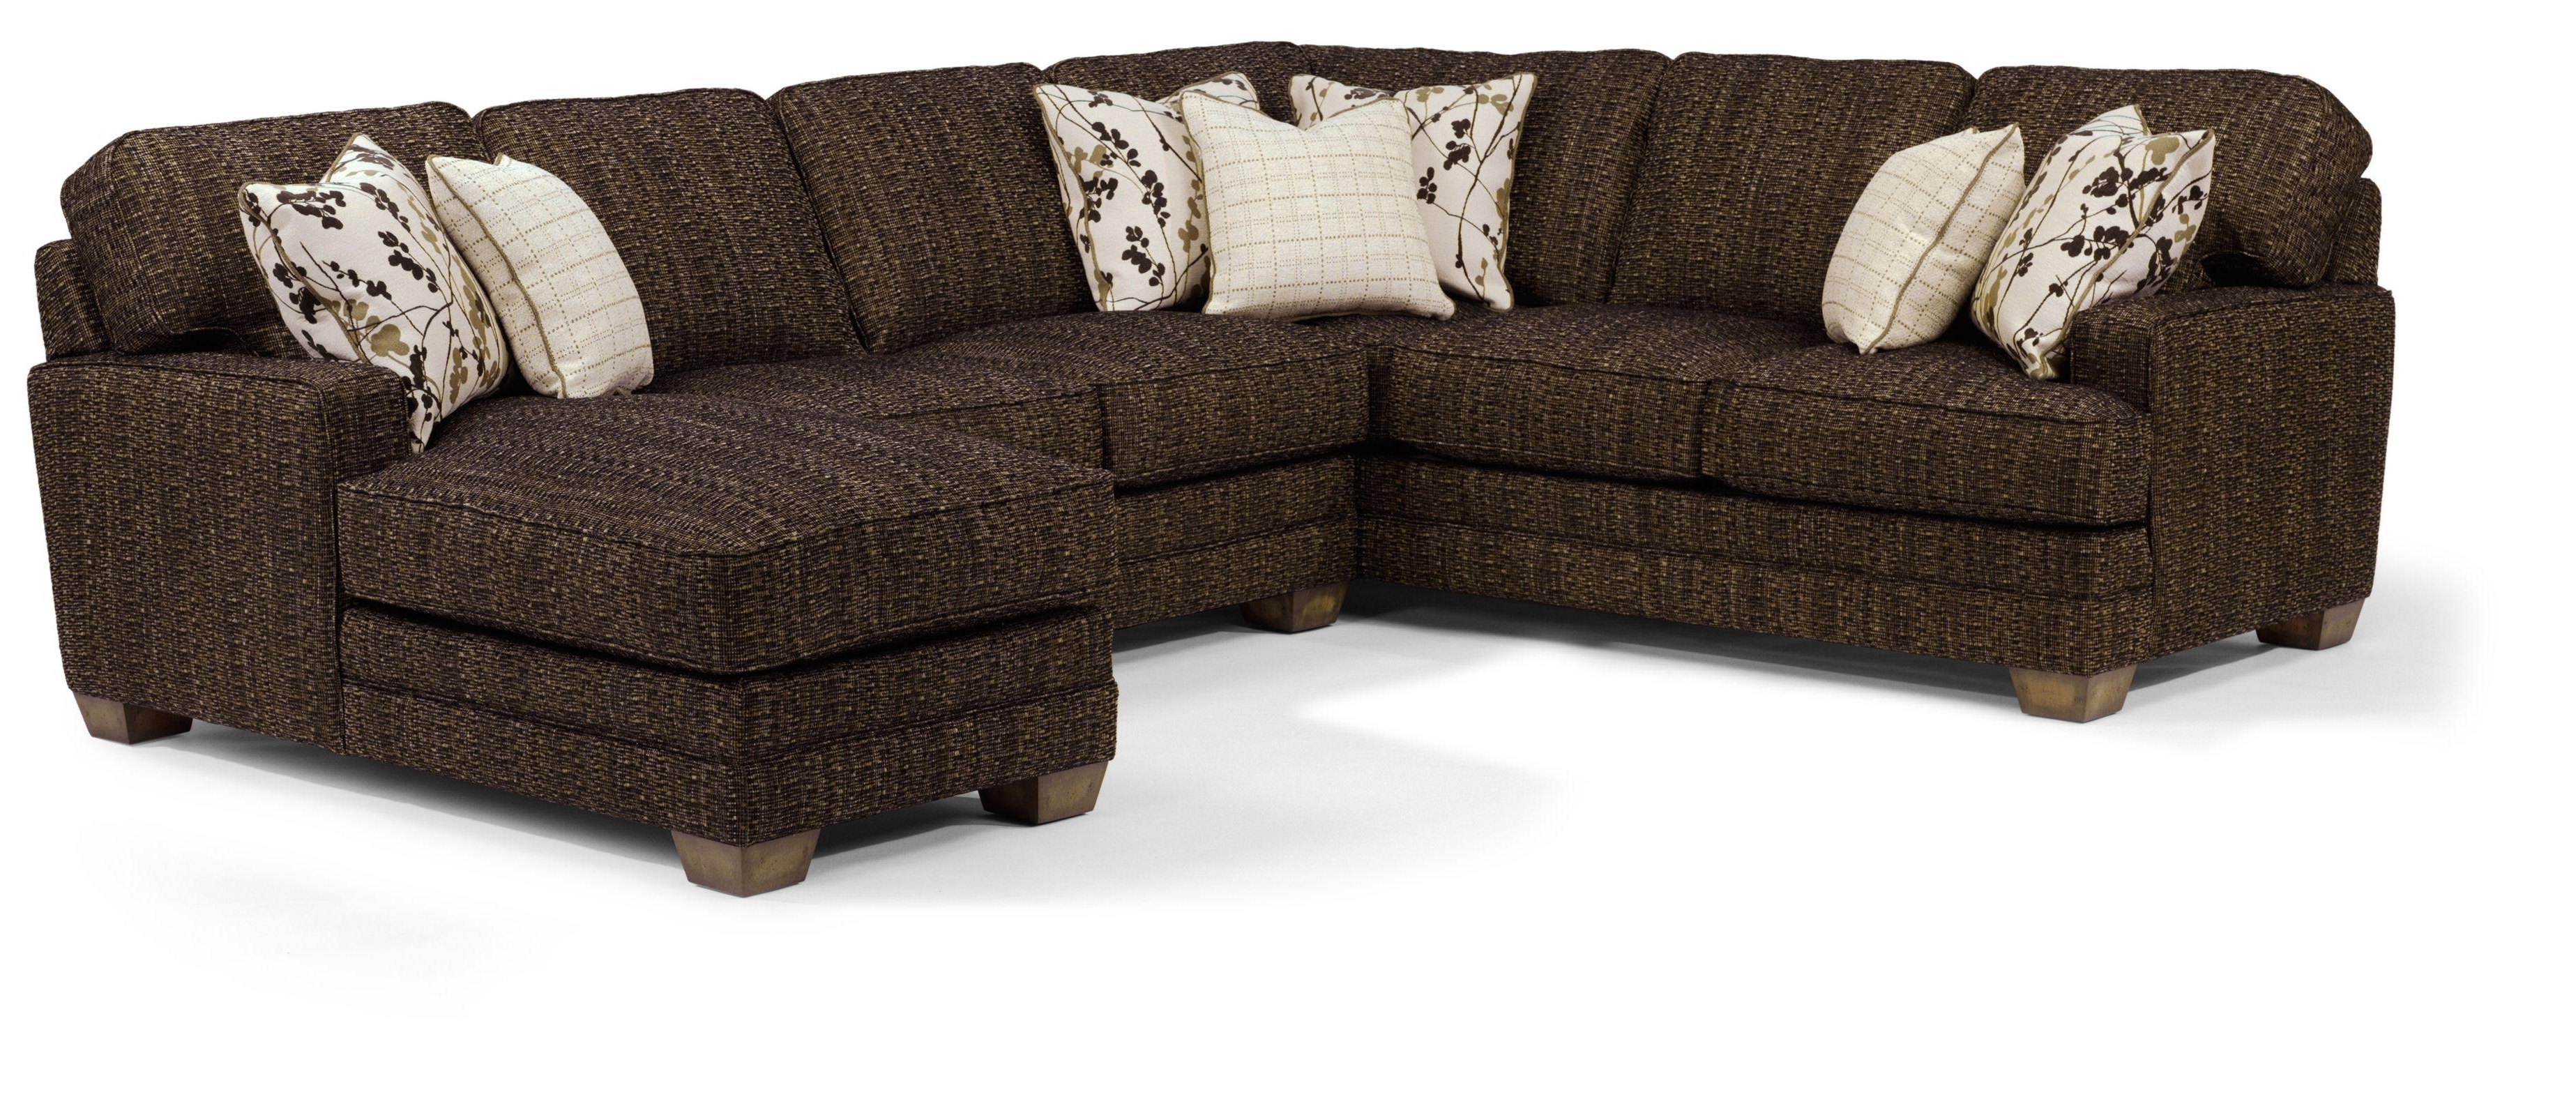 Current Duluth Mn Sectional Sofas Within Flexsteel That's My Style <b>customizable</b> 3 Piece Sectional (View 16 of 20)